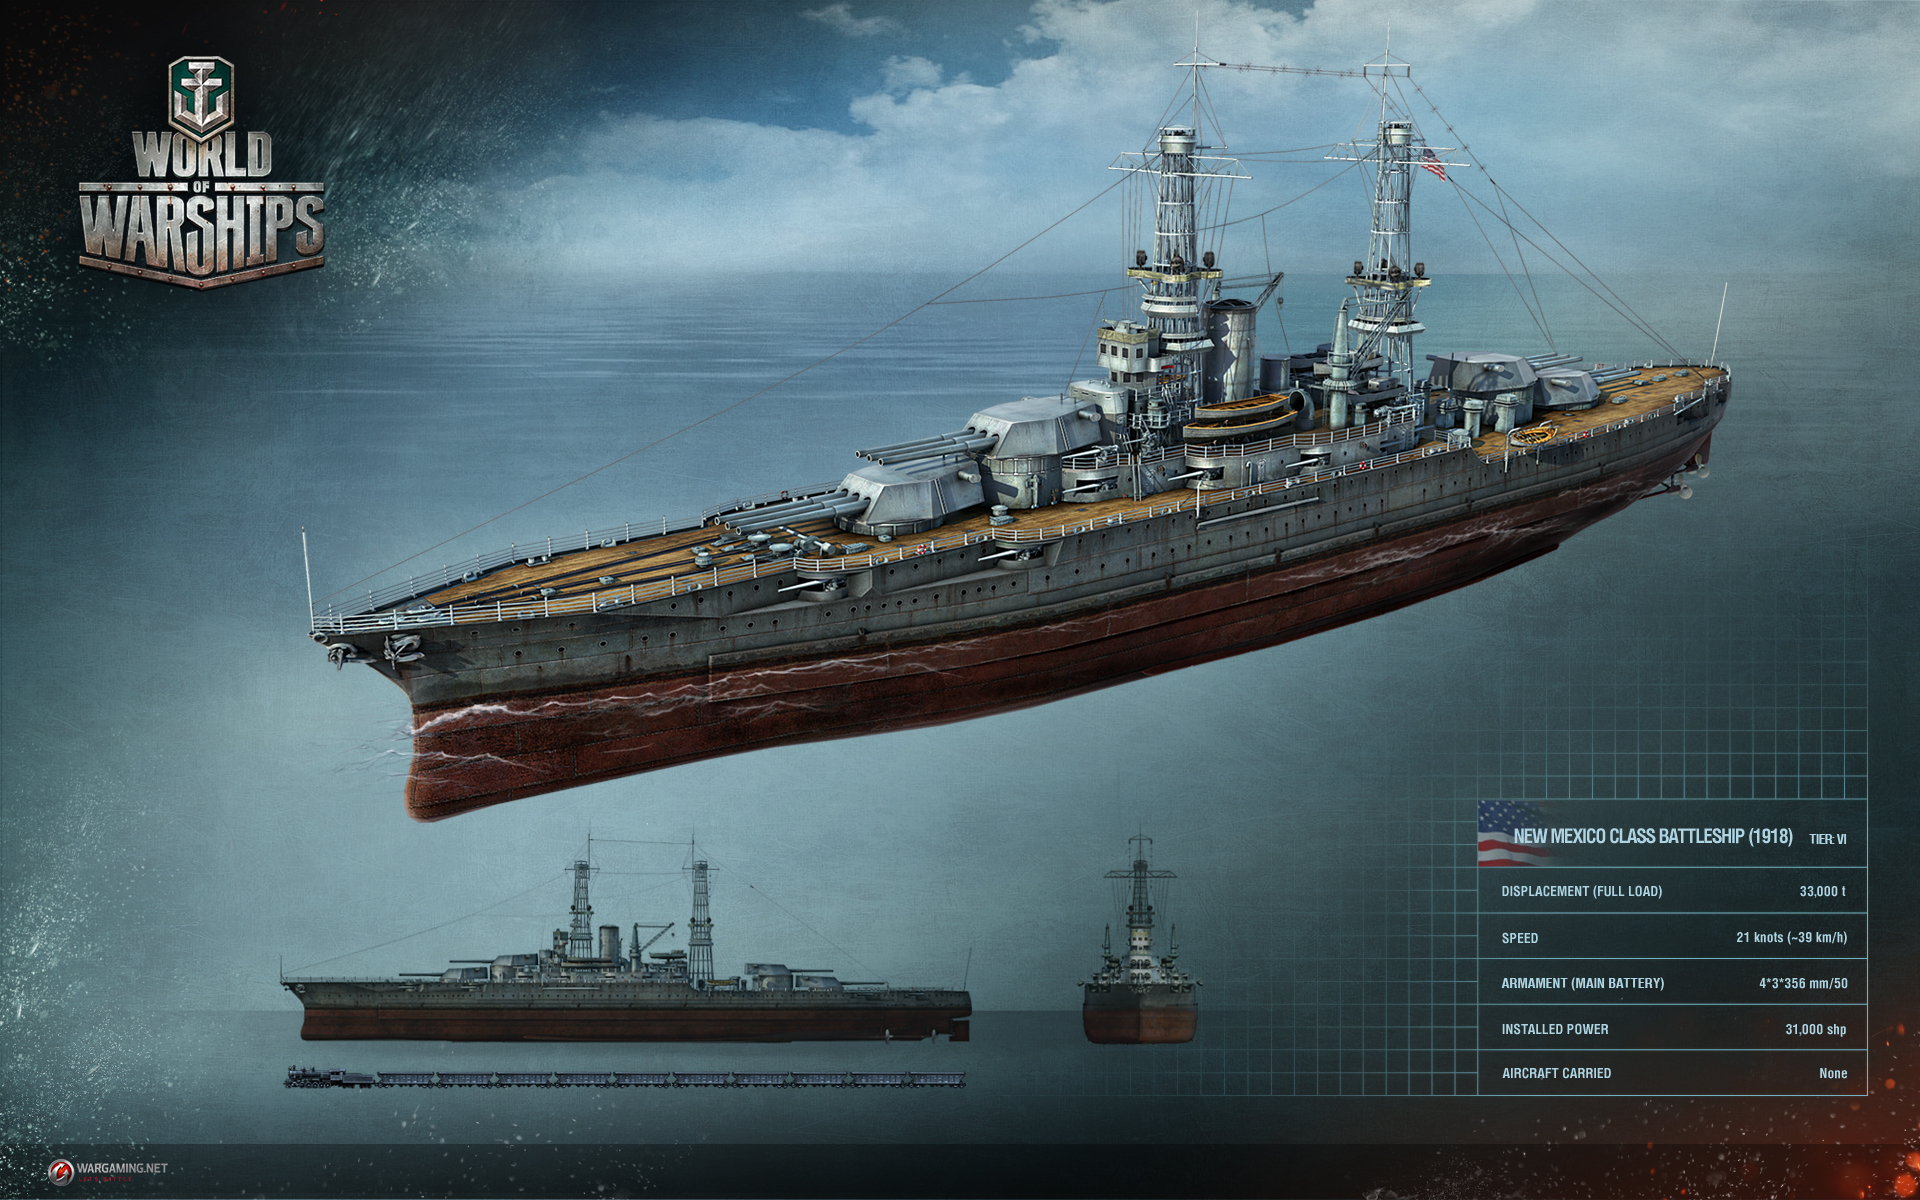 World Of Warships Wallpaper: World Of Warships Wallpapers High Quality